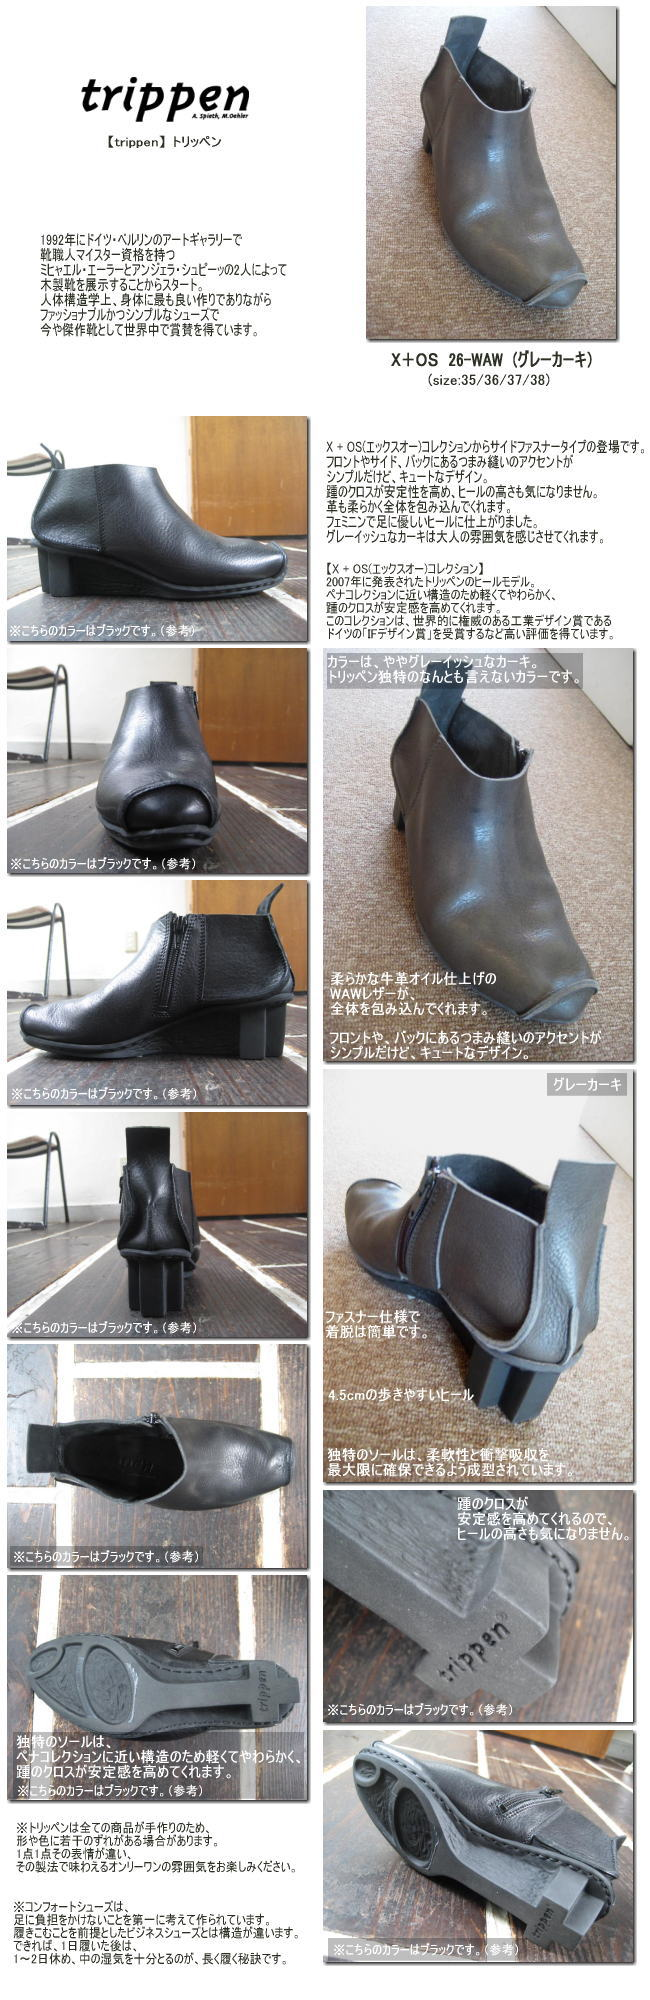 【trippen】トリッペン X-OS 26-WAW color グレーカーキ size 35/36/37/38